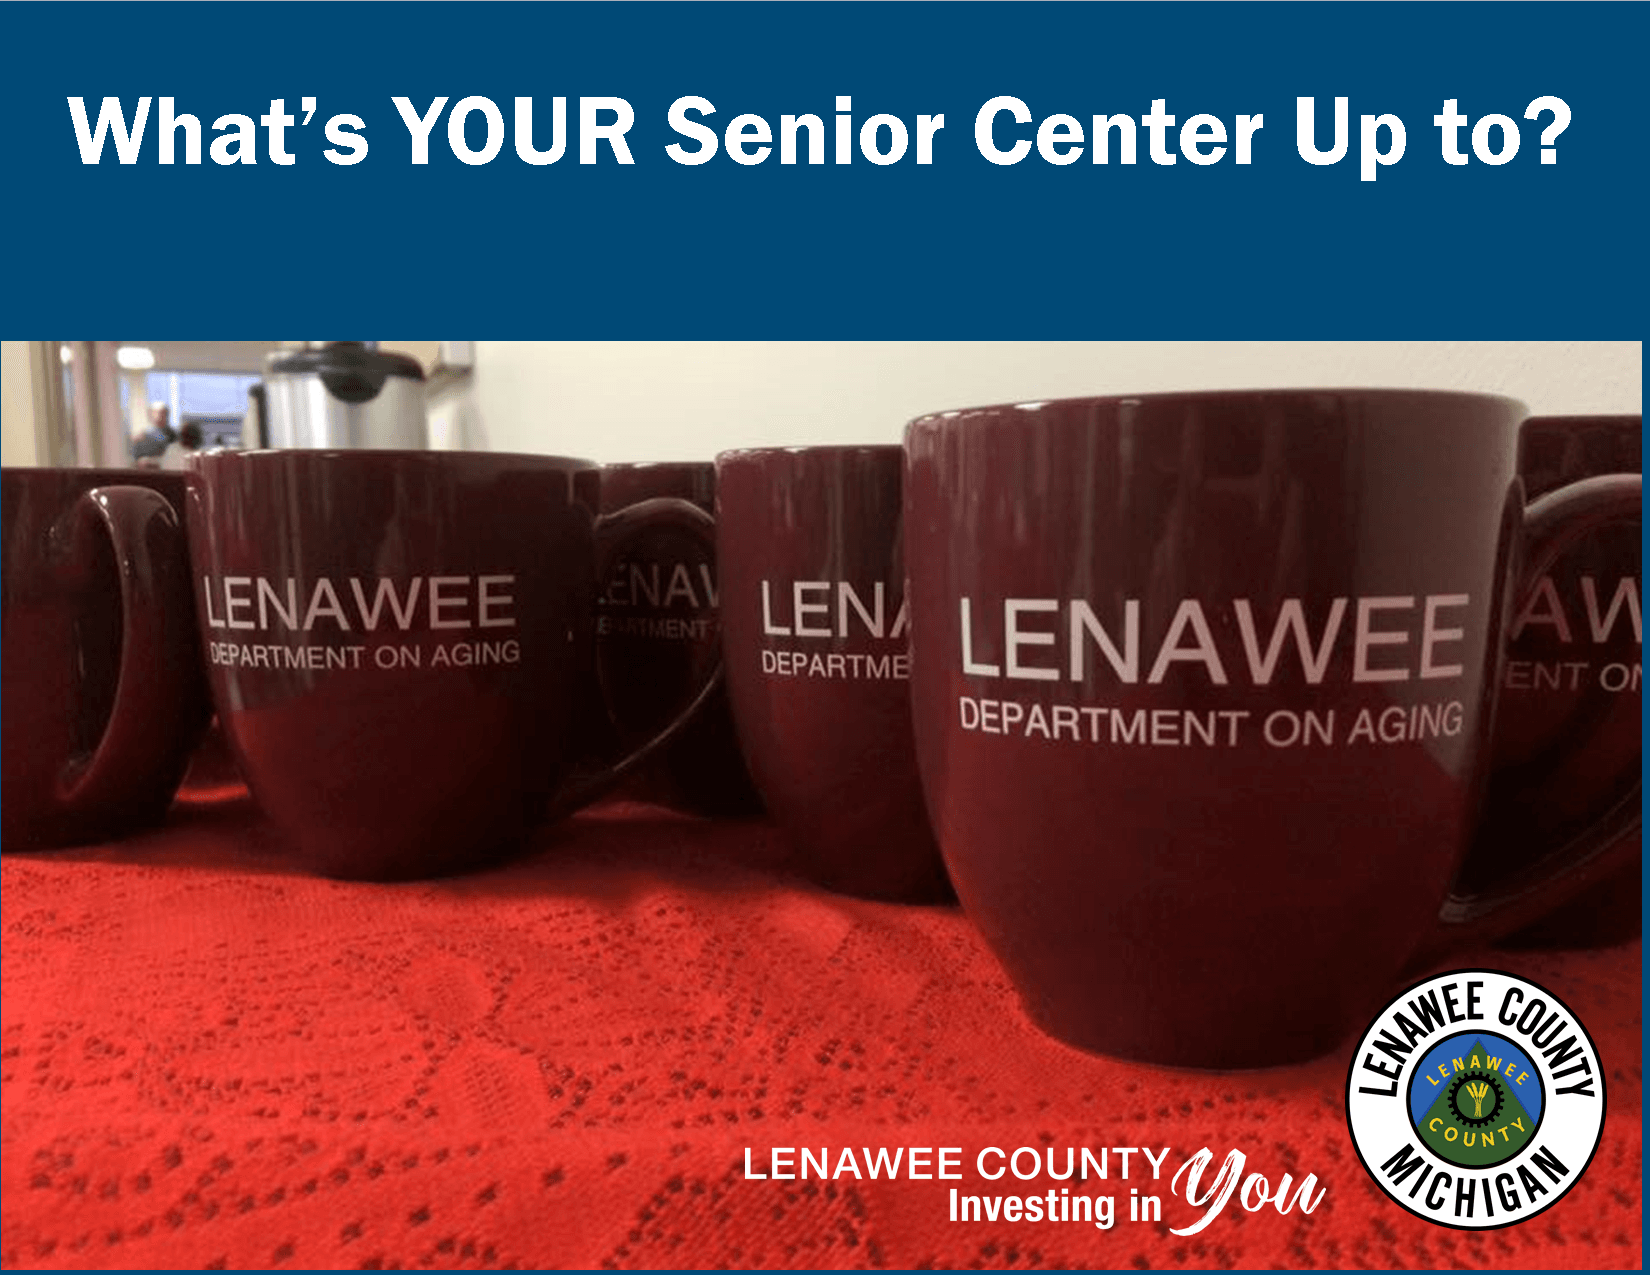 Lenawee Department on Aging coffe cups lined up